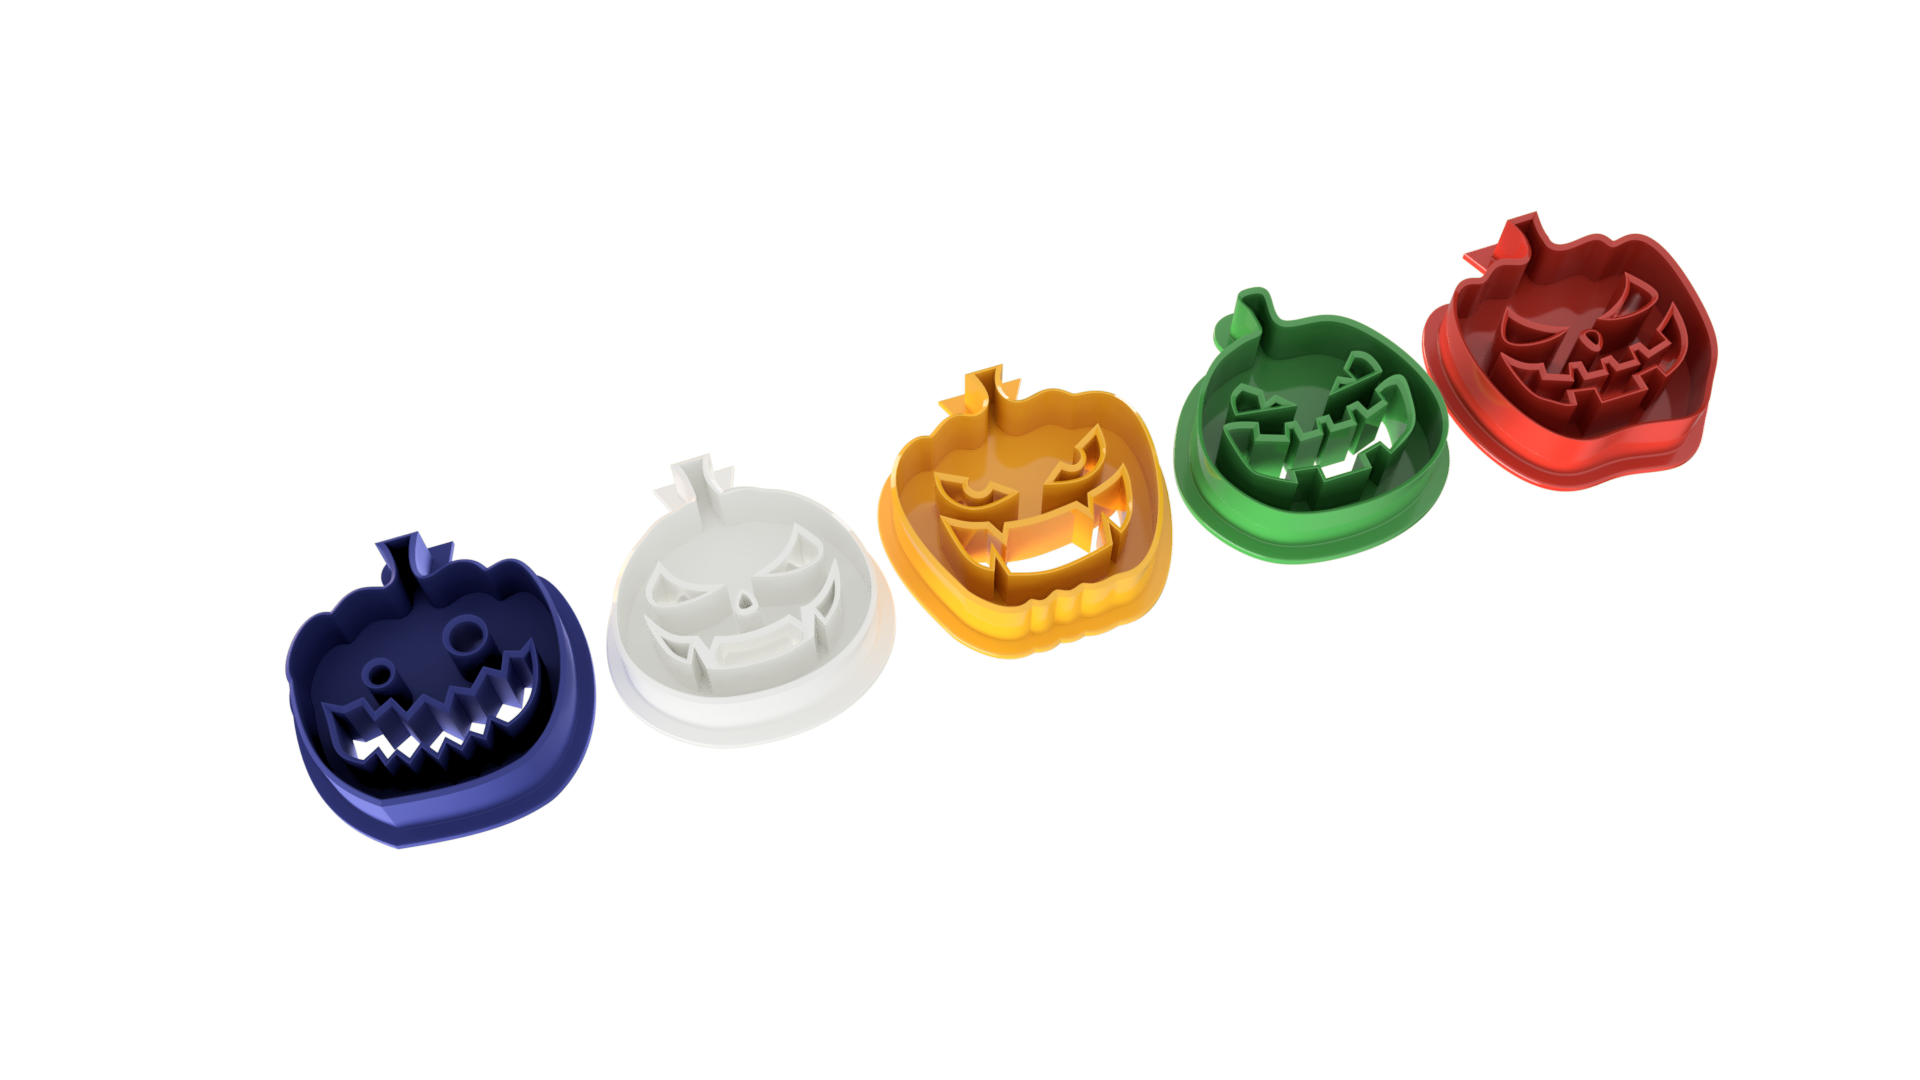 Halloween_cookie_cutter_2017-Oct-28_08-46-14PM-000_CustomizedView27028277245.png Download free STL file Halloween various Lantern Cookie Cutter • Design to 3D print, ZepTo